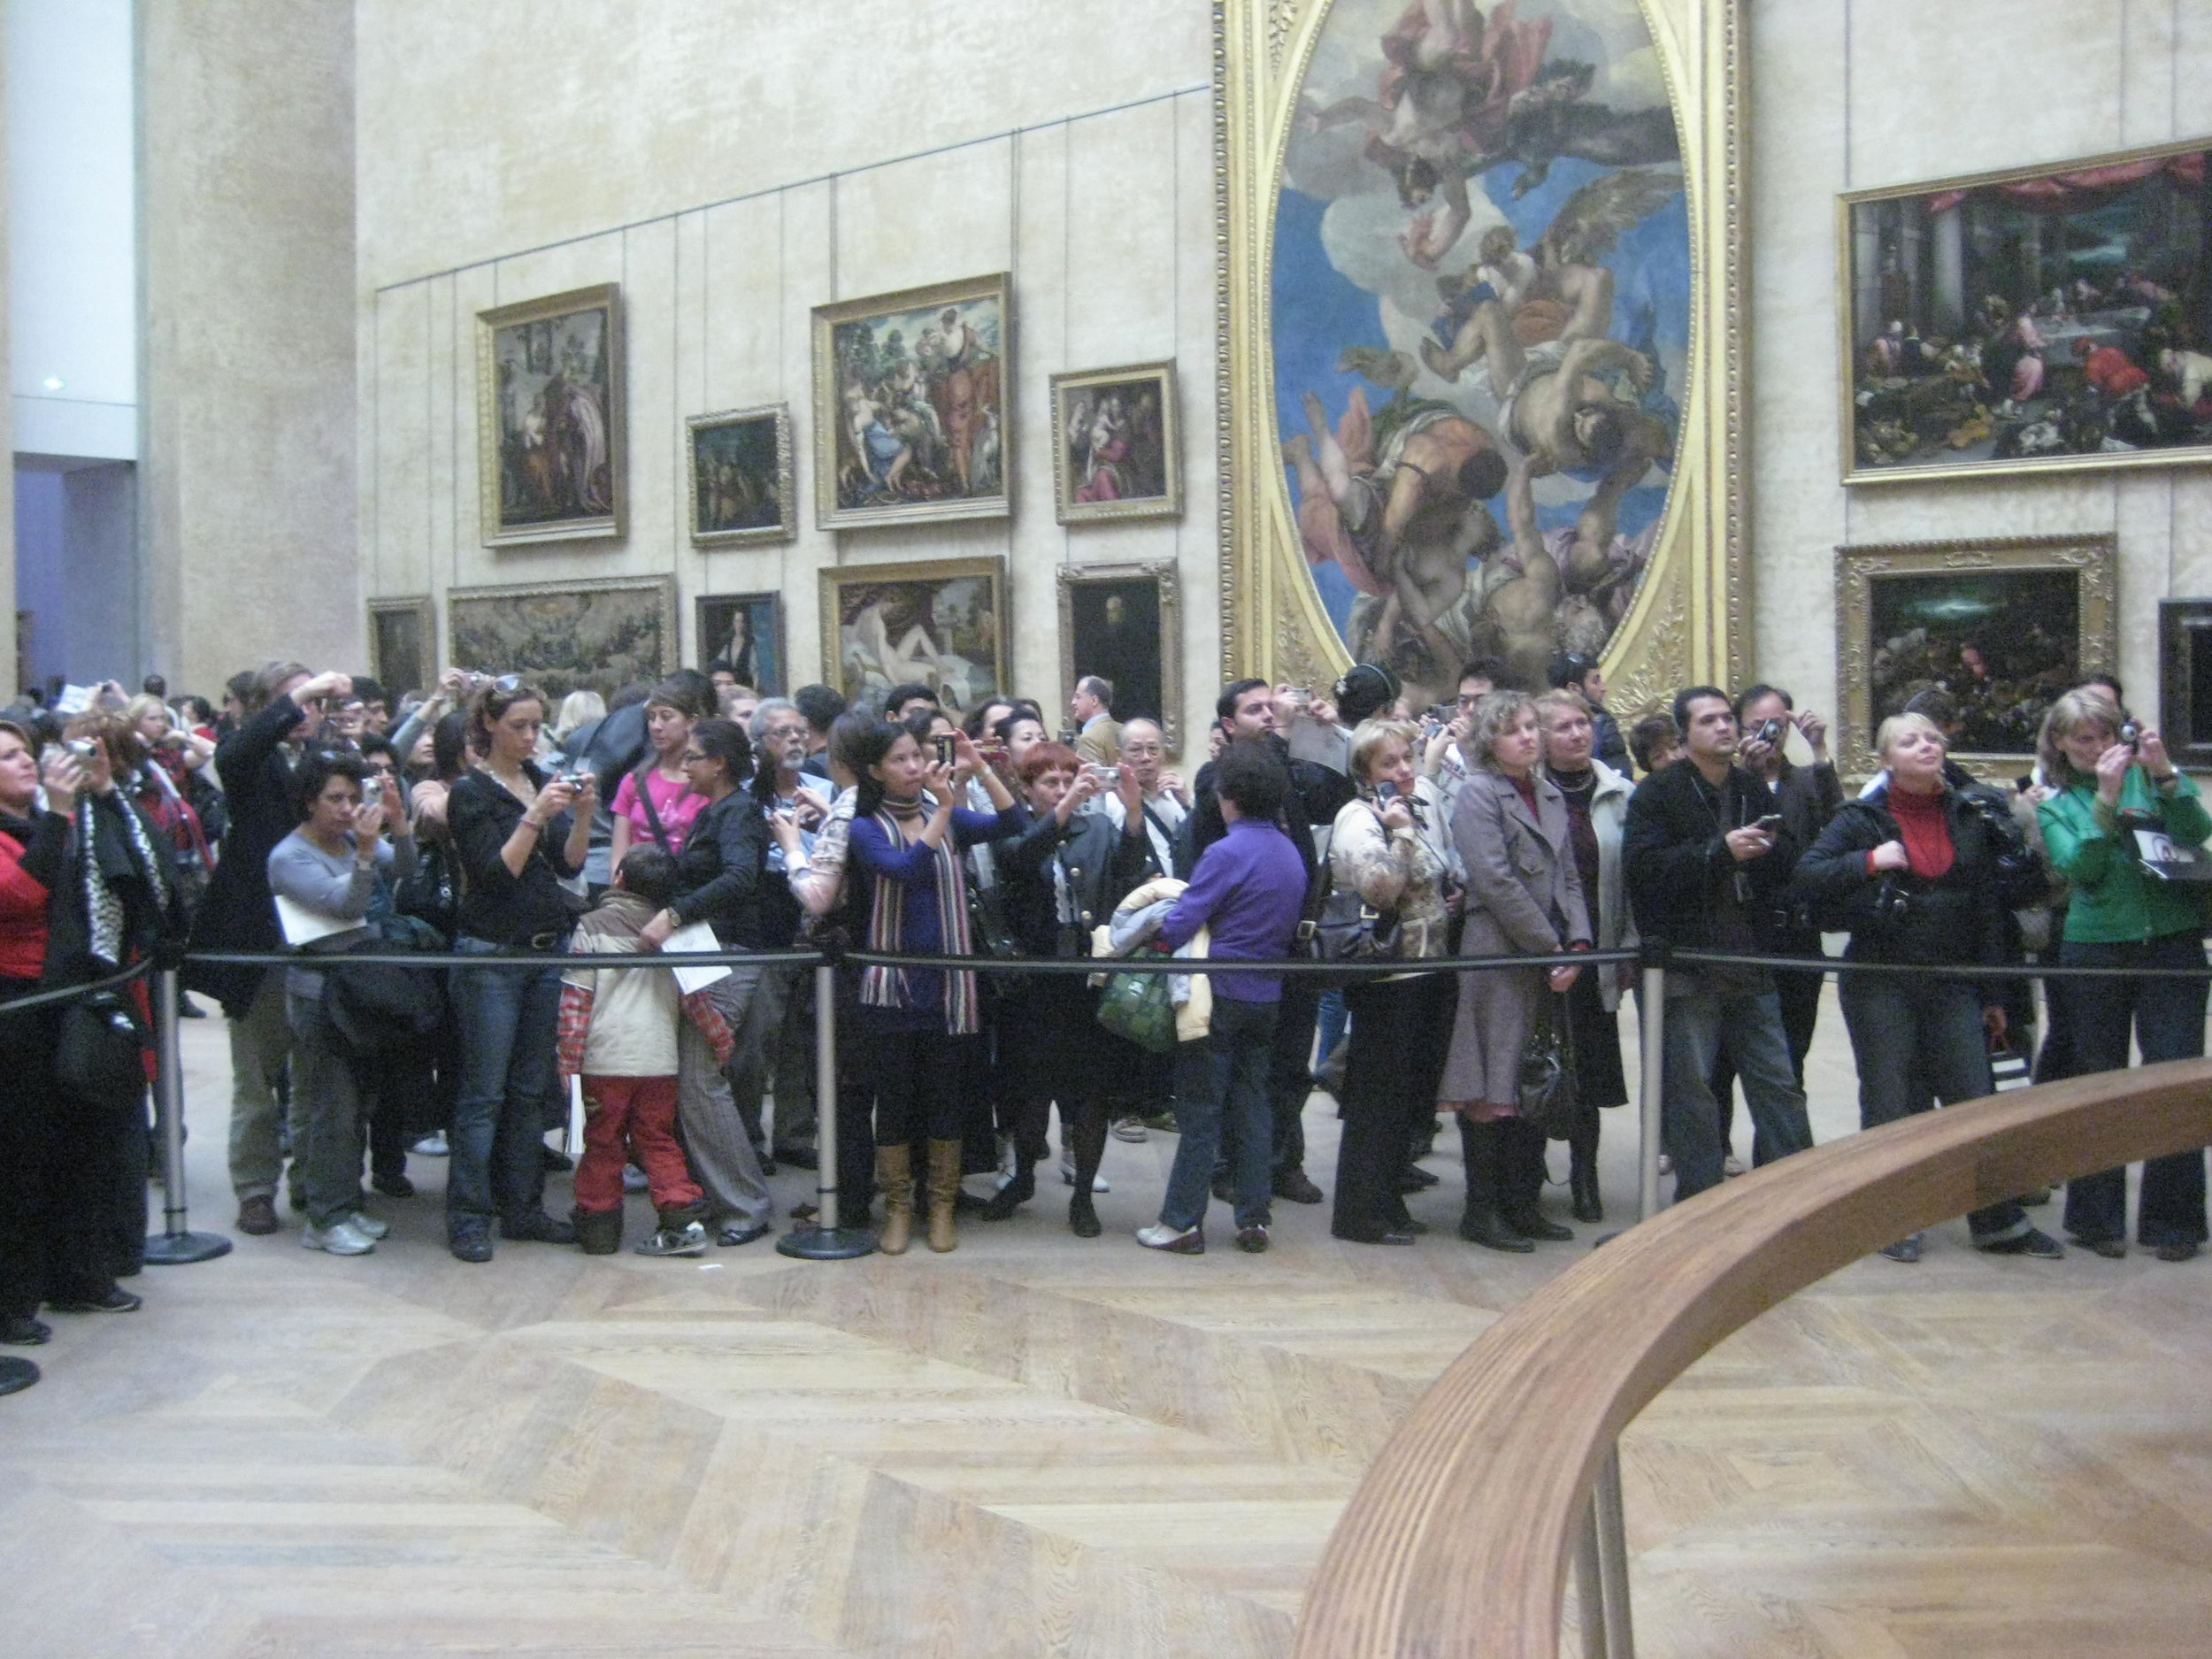 Etiquetteer enjoyed watching crowds of art lovers at the Louvre seeing the  Mona Lisa .